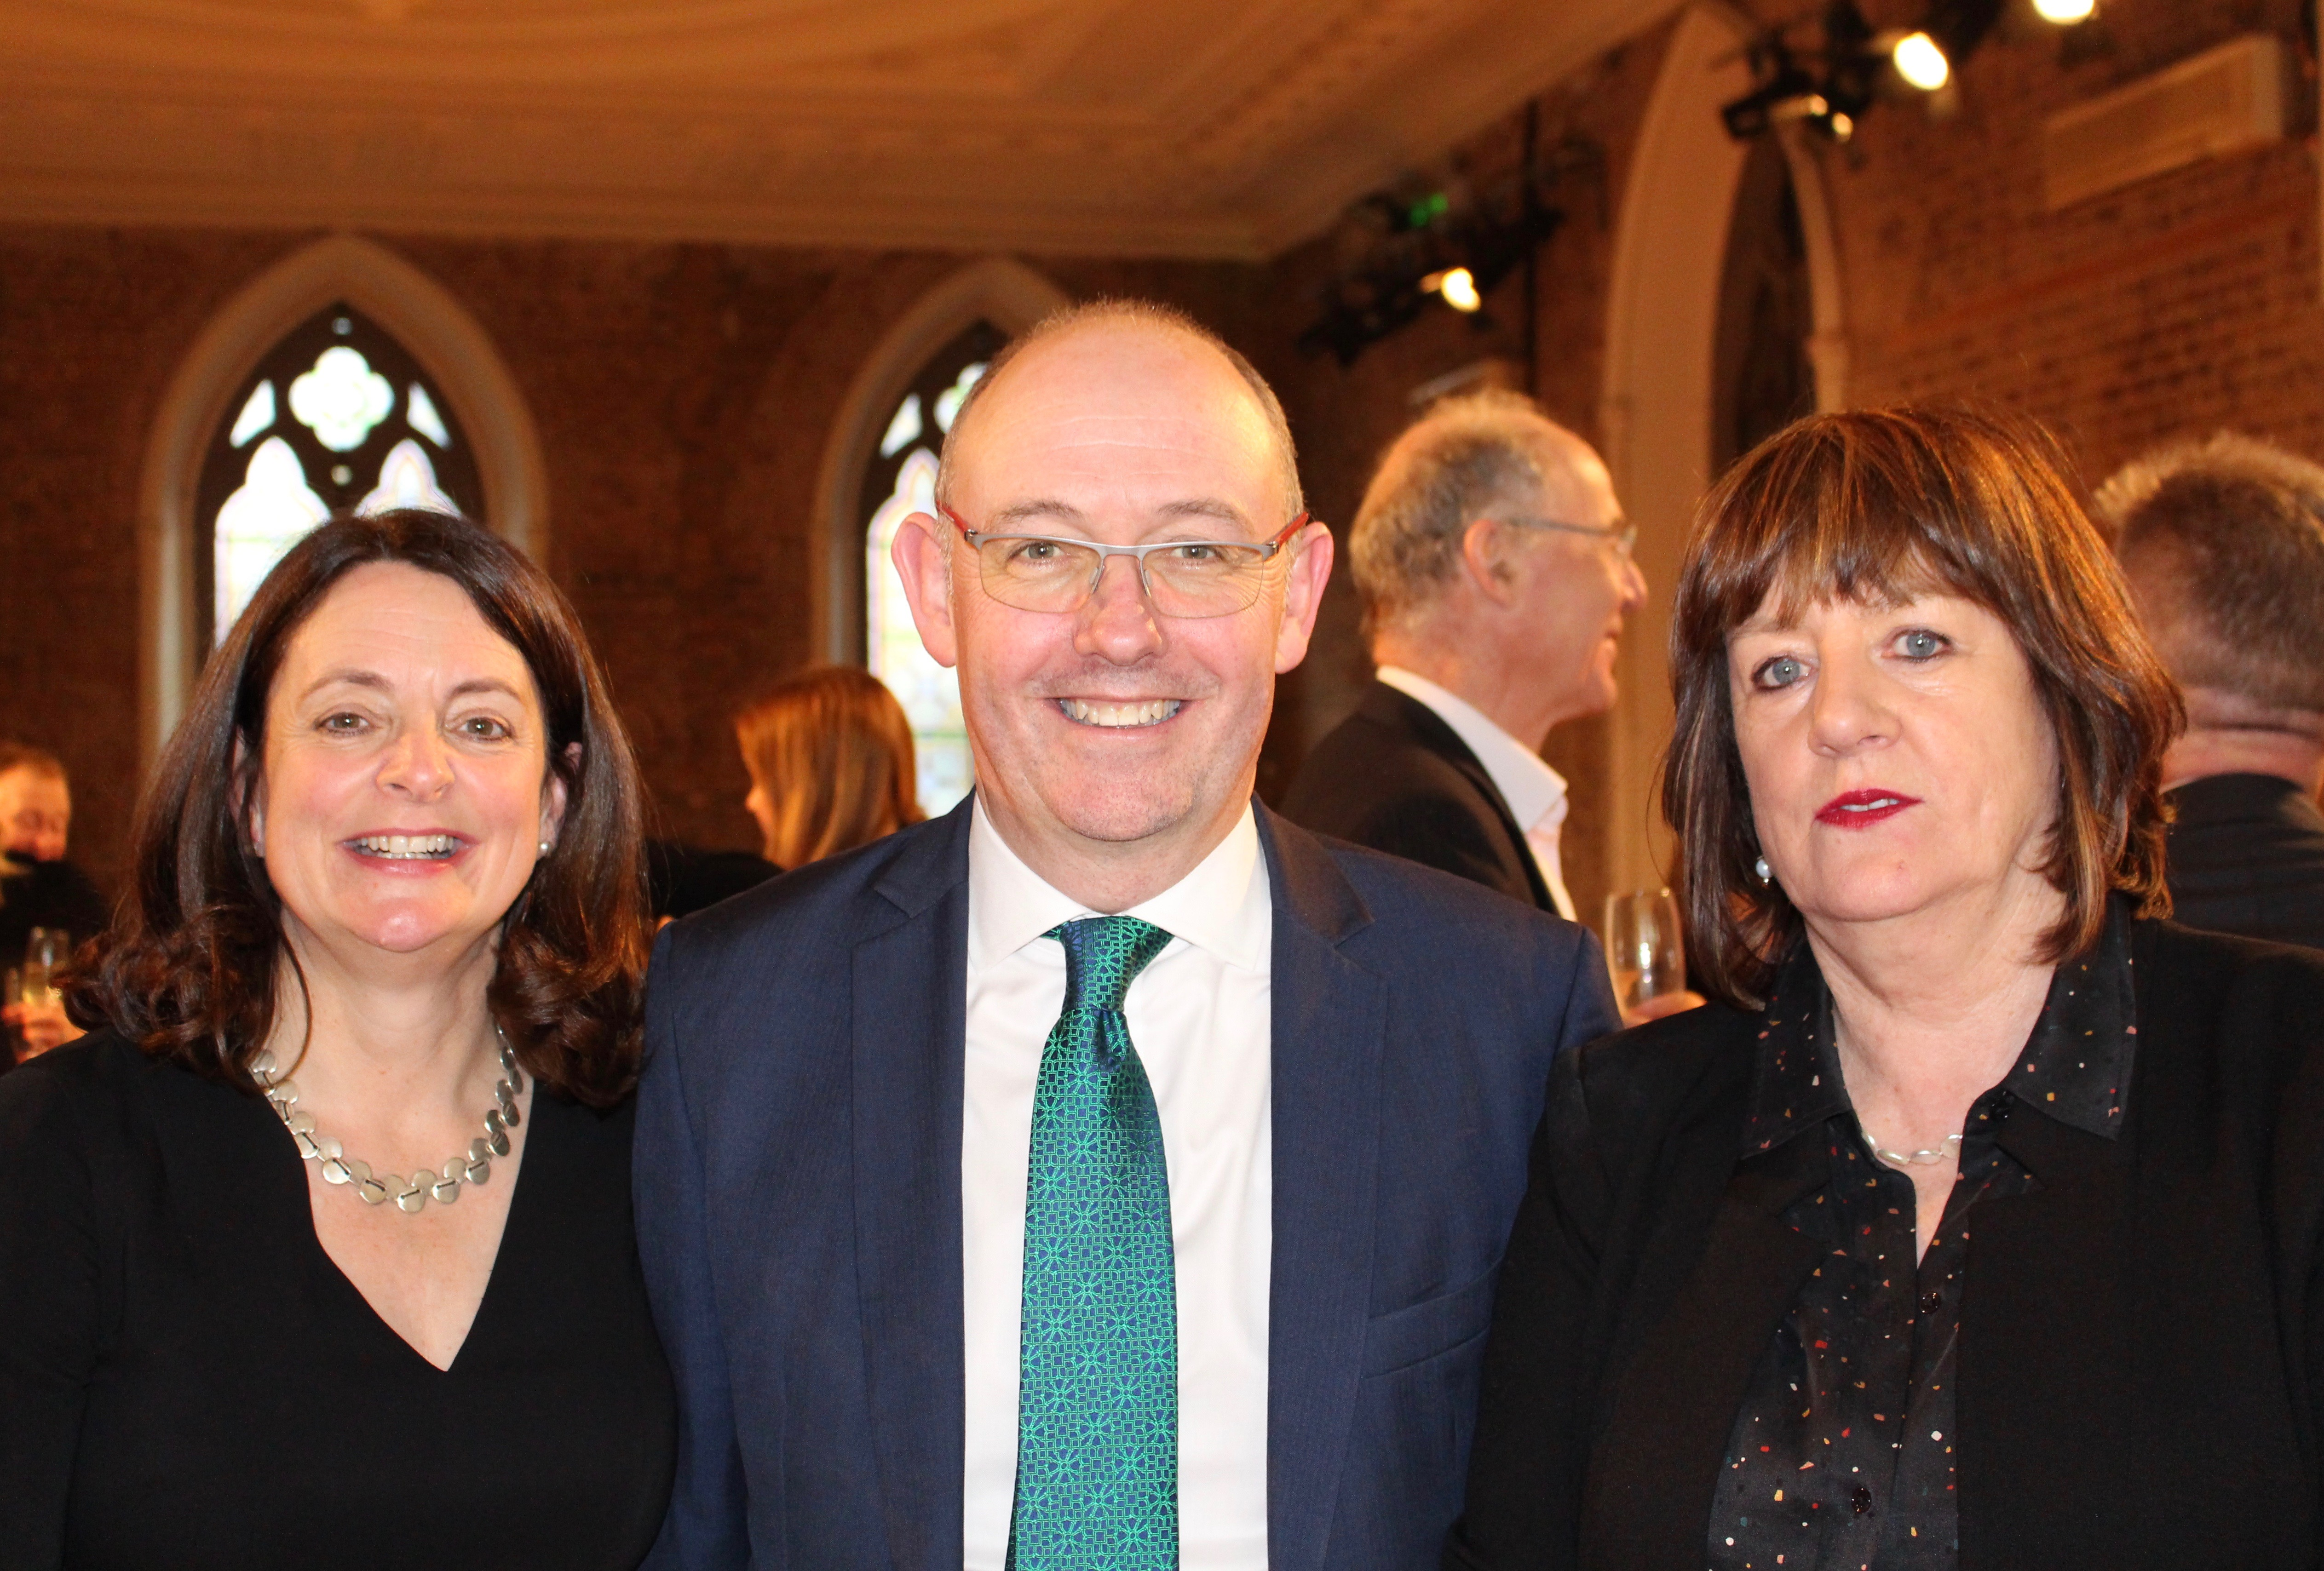 Head of Family Law, Karen O'Leary, Managing Partner, Philip Gilliland, and Head of the new Dublin office, Partner Geraldine Keehan.